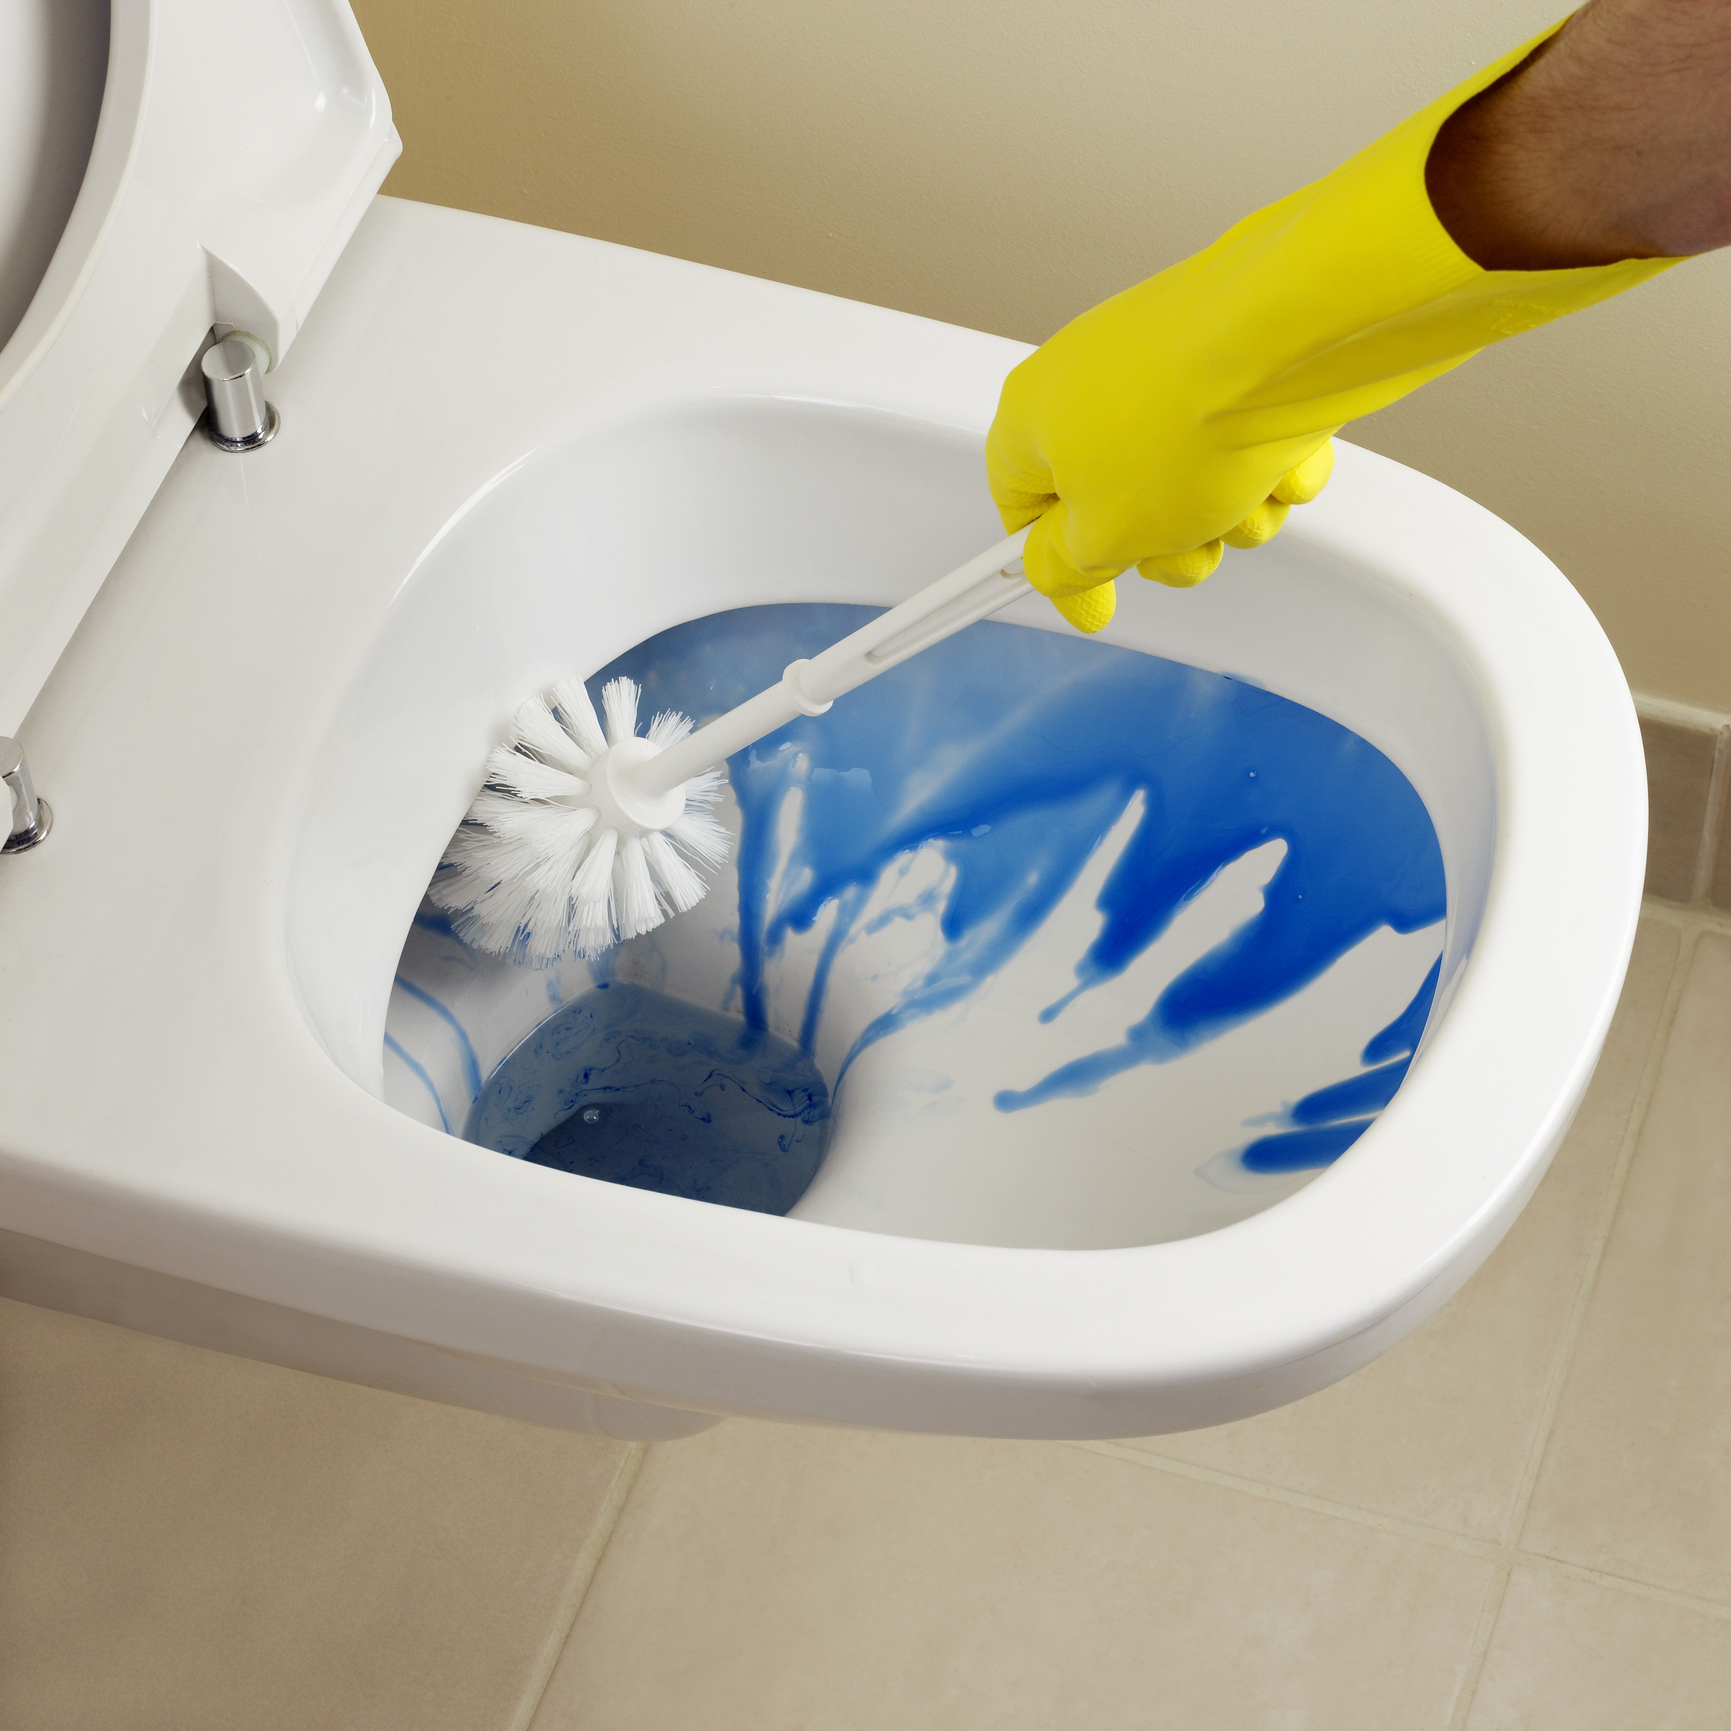 Household Smells 41 Hacks To Get Rid Of Them Real Homes